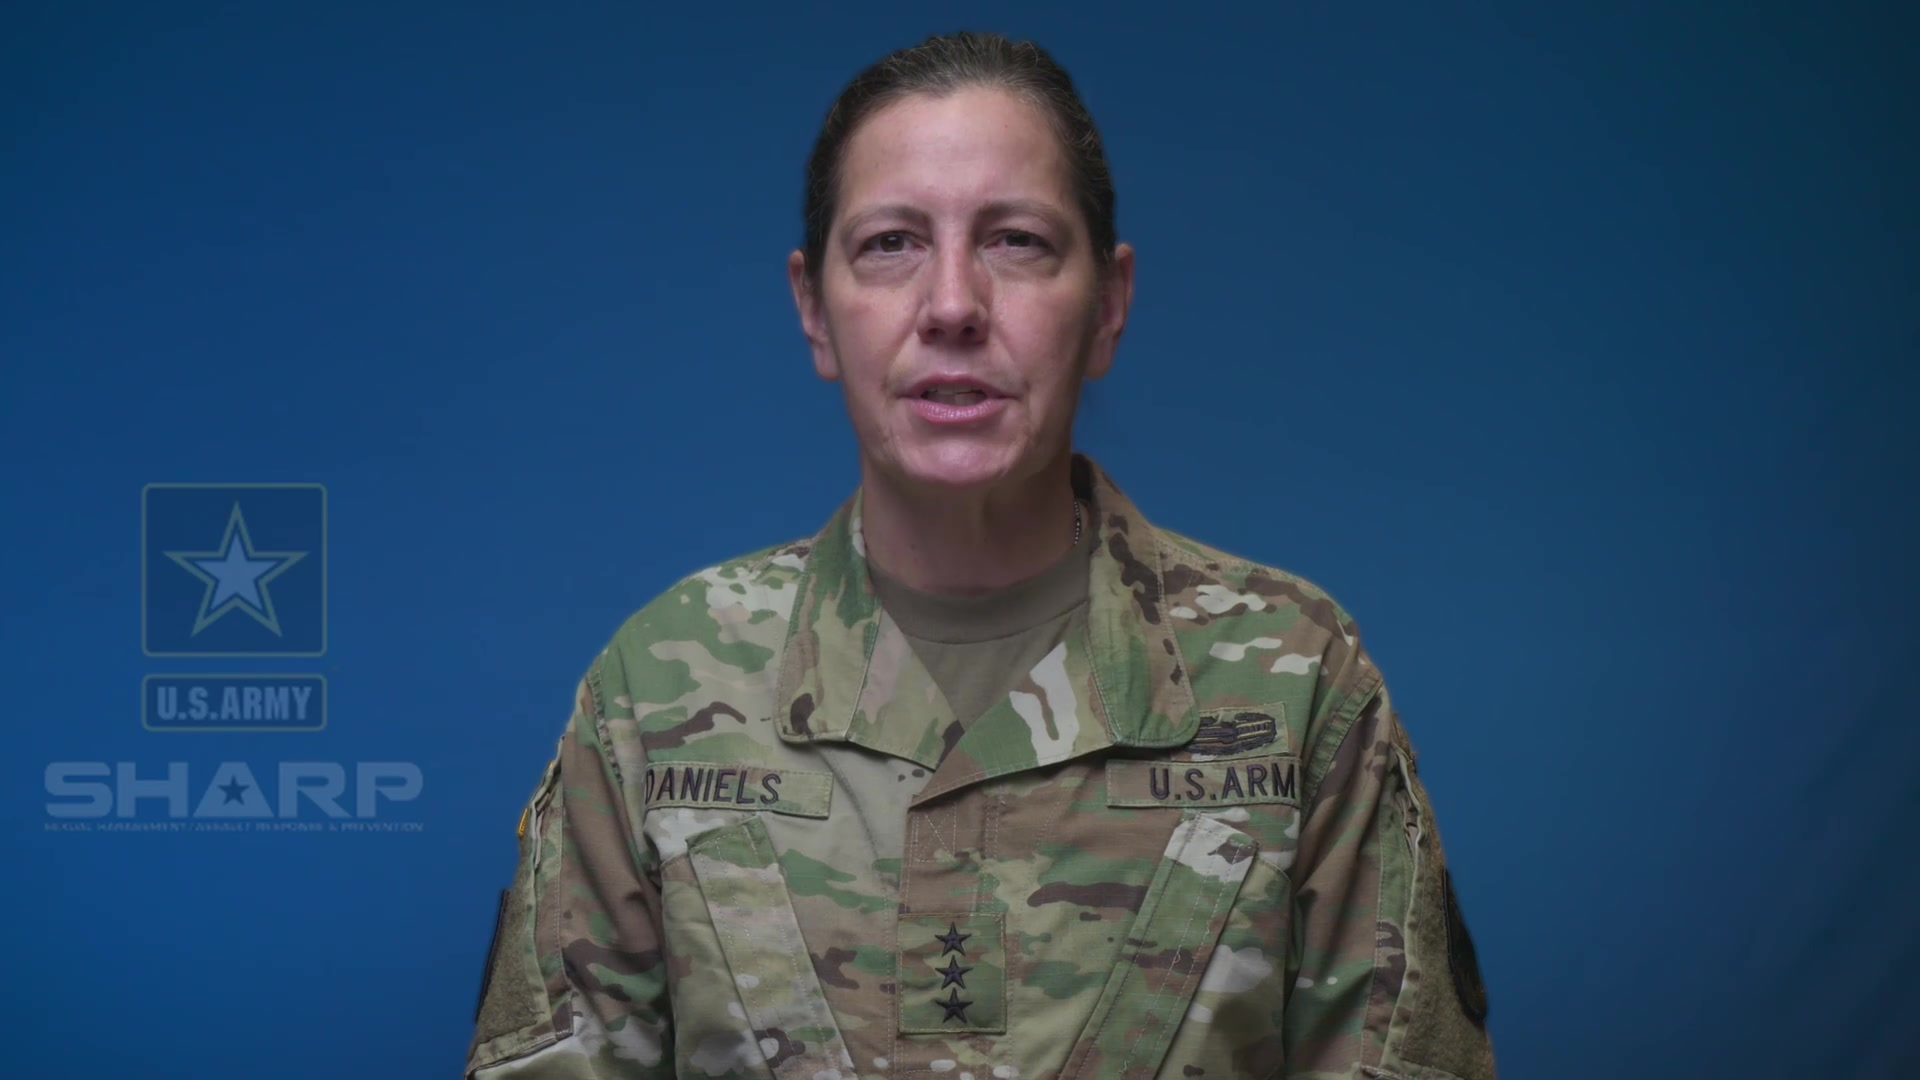 Lt. Gen. Jody Daniels, chief of Army Reserve and commanding general, Army Reserve Command, speaks out agains sexual assault and sexual harassment in our ranks. All of us must work together to create an environment of trust and respect among our ranks.